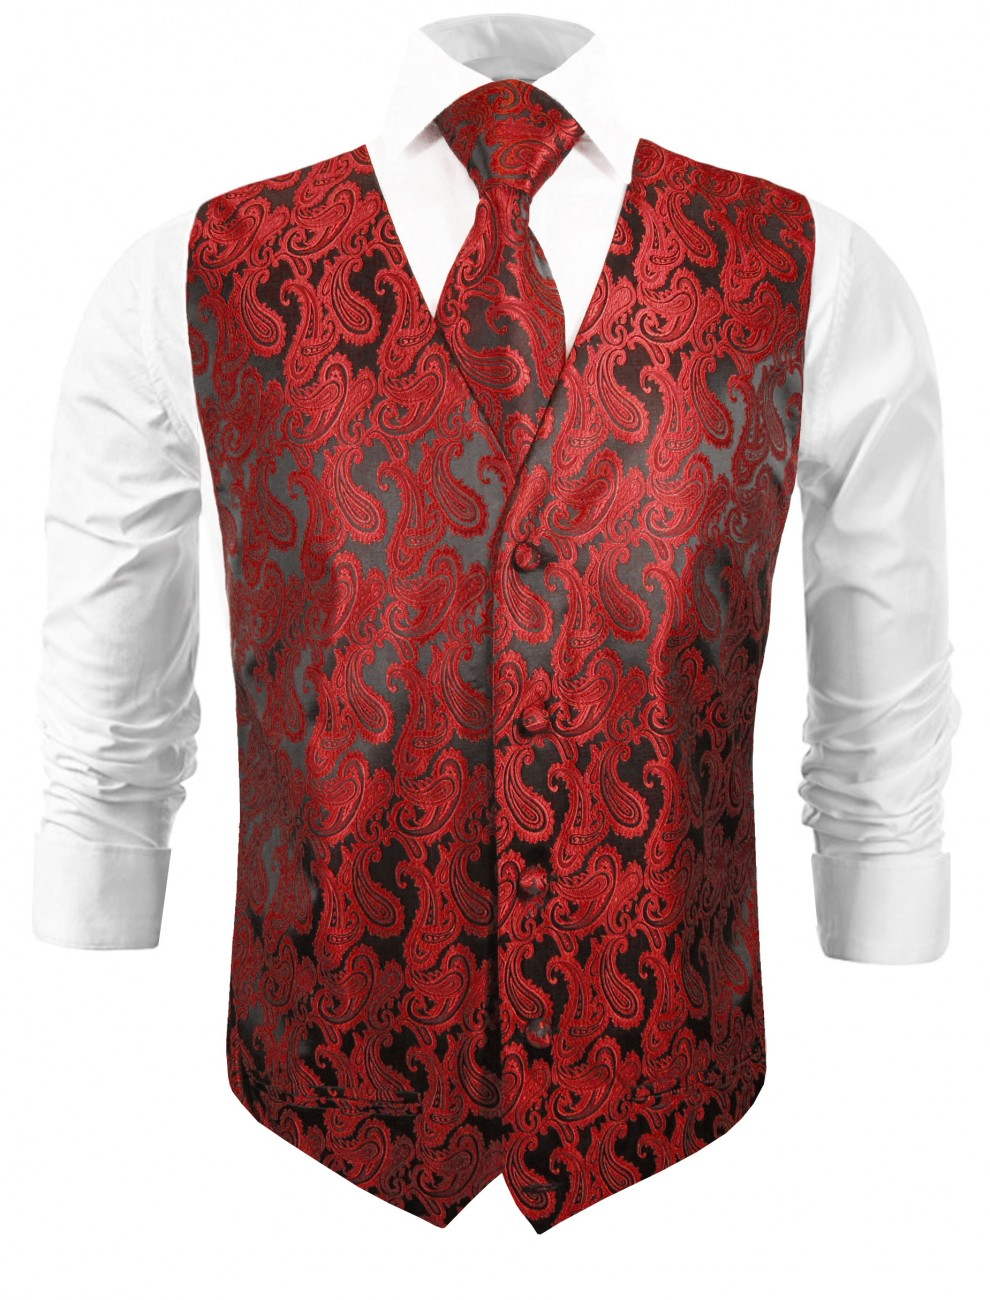 Wedding vest with necktie black red paisley